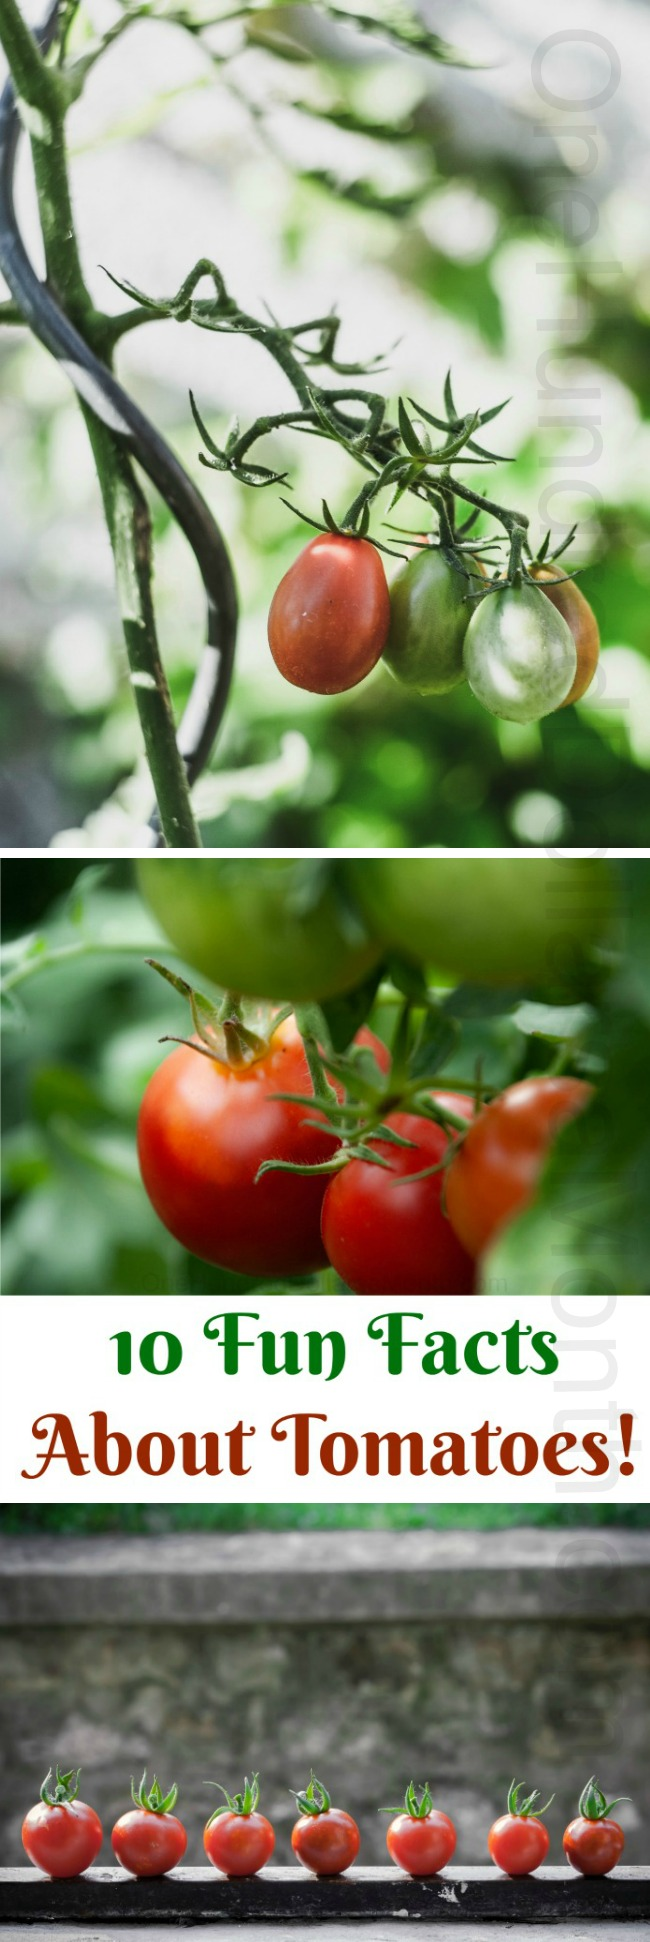 10 Fun Facts About Tomatoes!